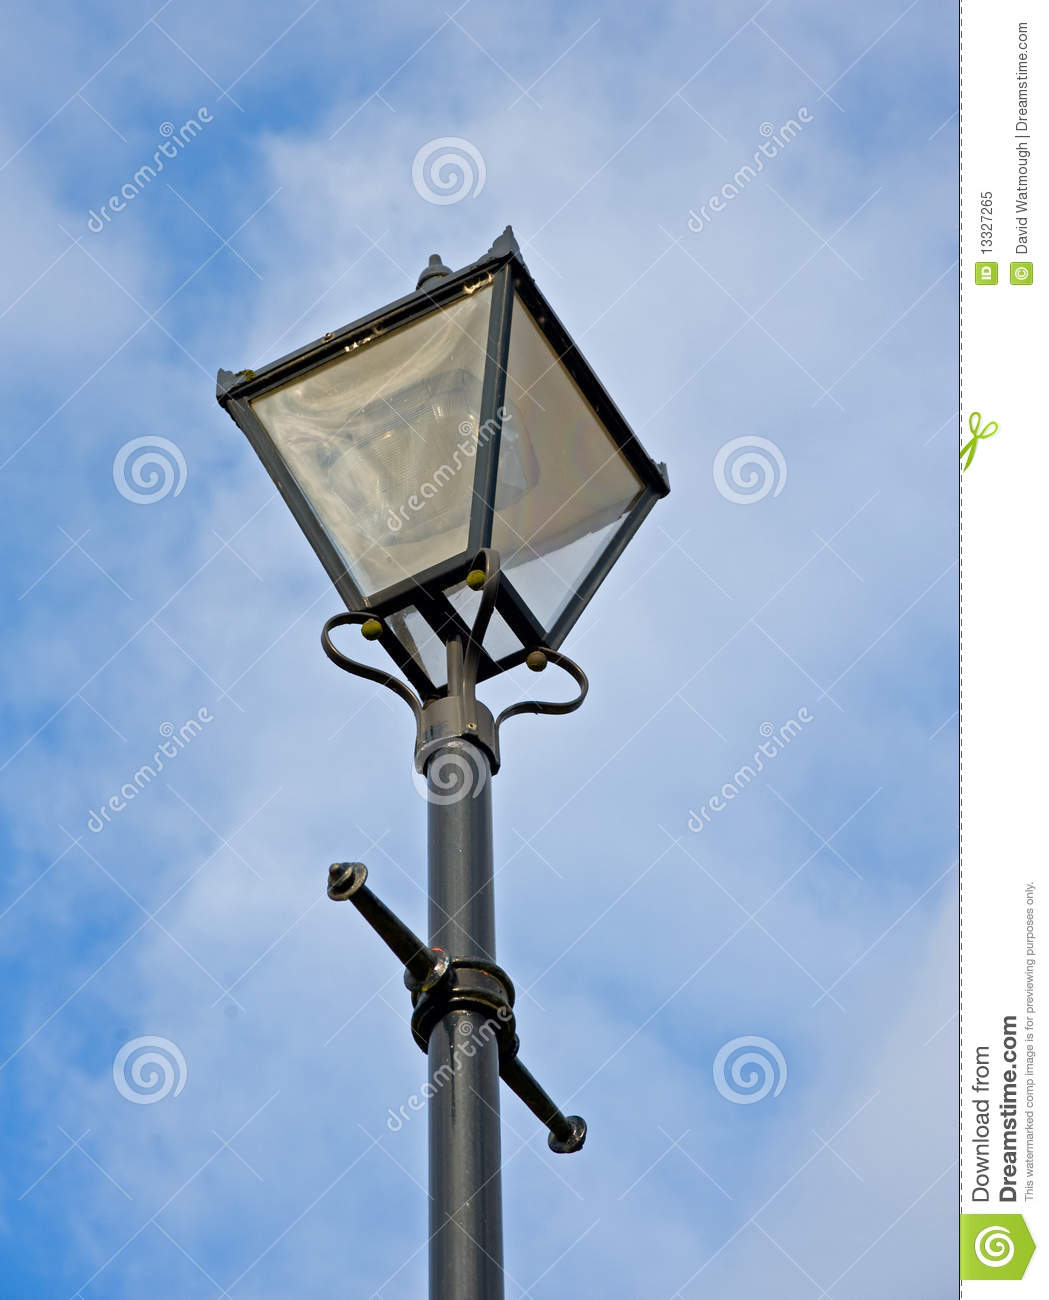 Royalty-Free Stock Photo. Download A Mock Antique Street L&. & A Mock Antique Street Lamp. Stock Image - Image: 13327265 azcodes.com